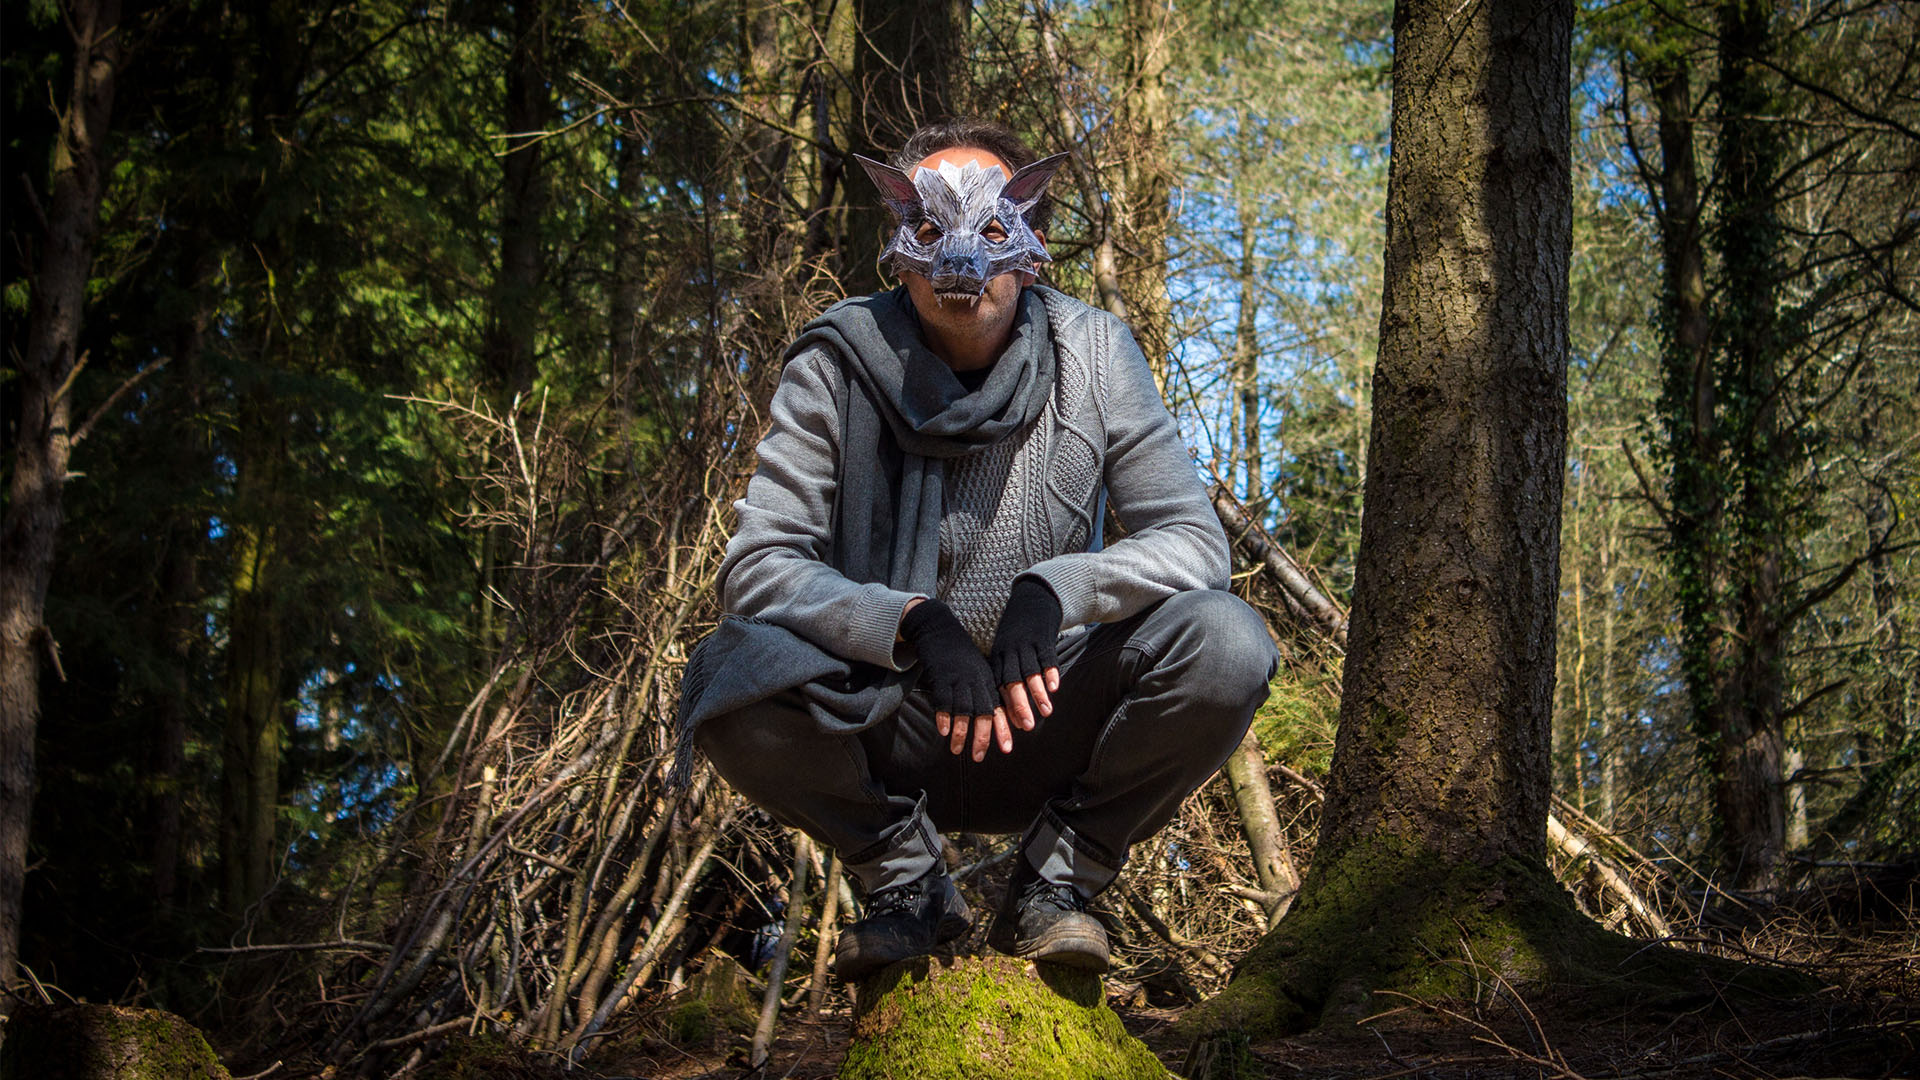 Little Red Riding Hood's Wolf is sitting crouched on a boulder in the woods,portrayed by an actor wearing grey clothing, a grey scarf, fingerless gloves and a very intricate and geometric wolf's mask